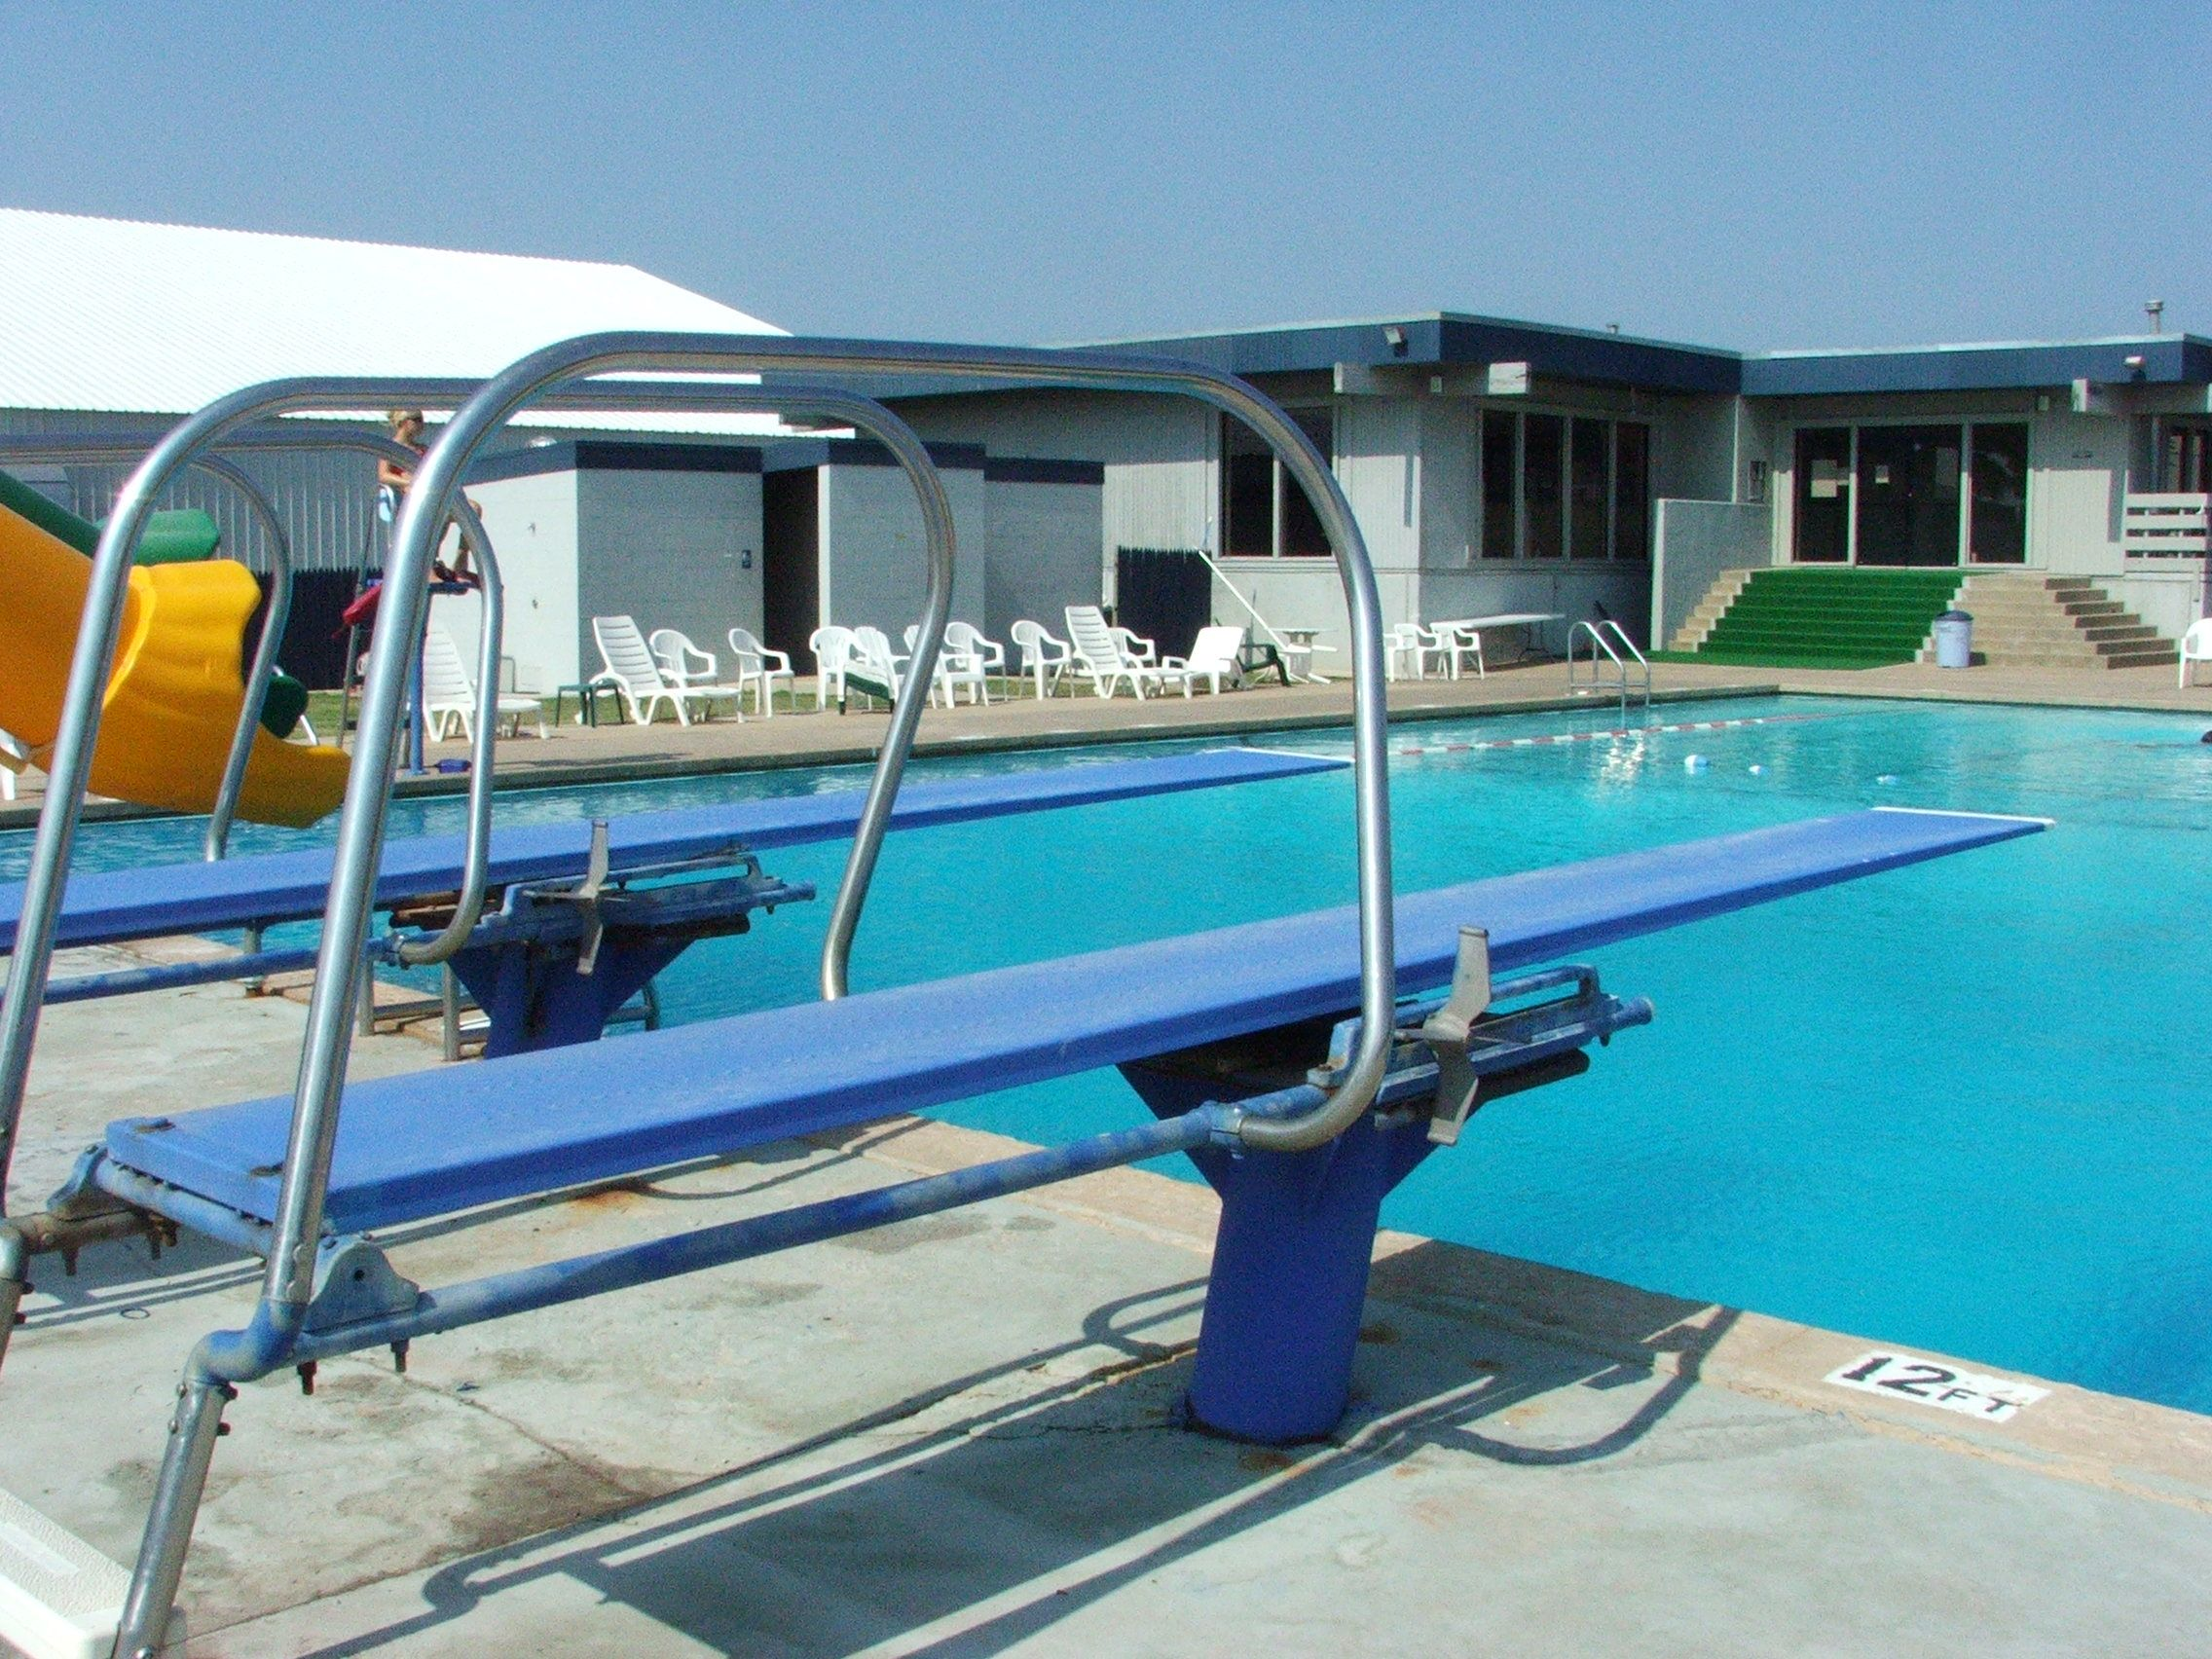 2 272 1 704 Pixels Swimming Pool And